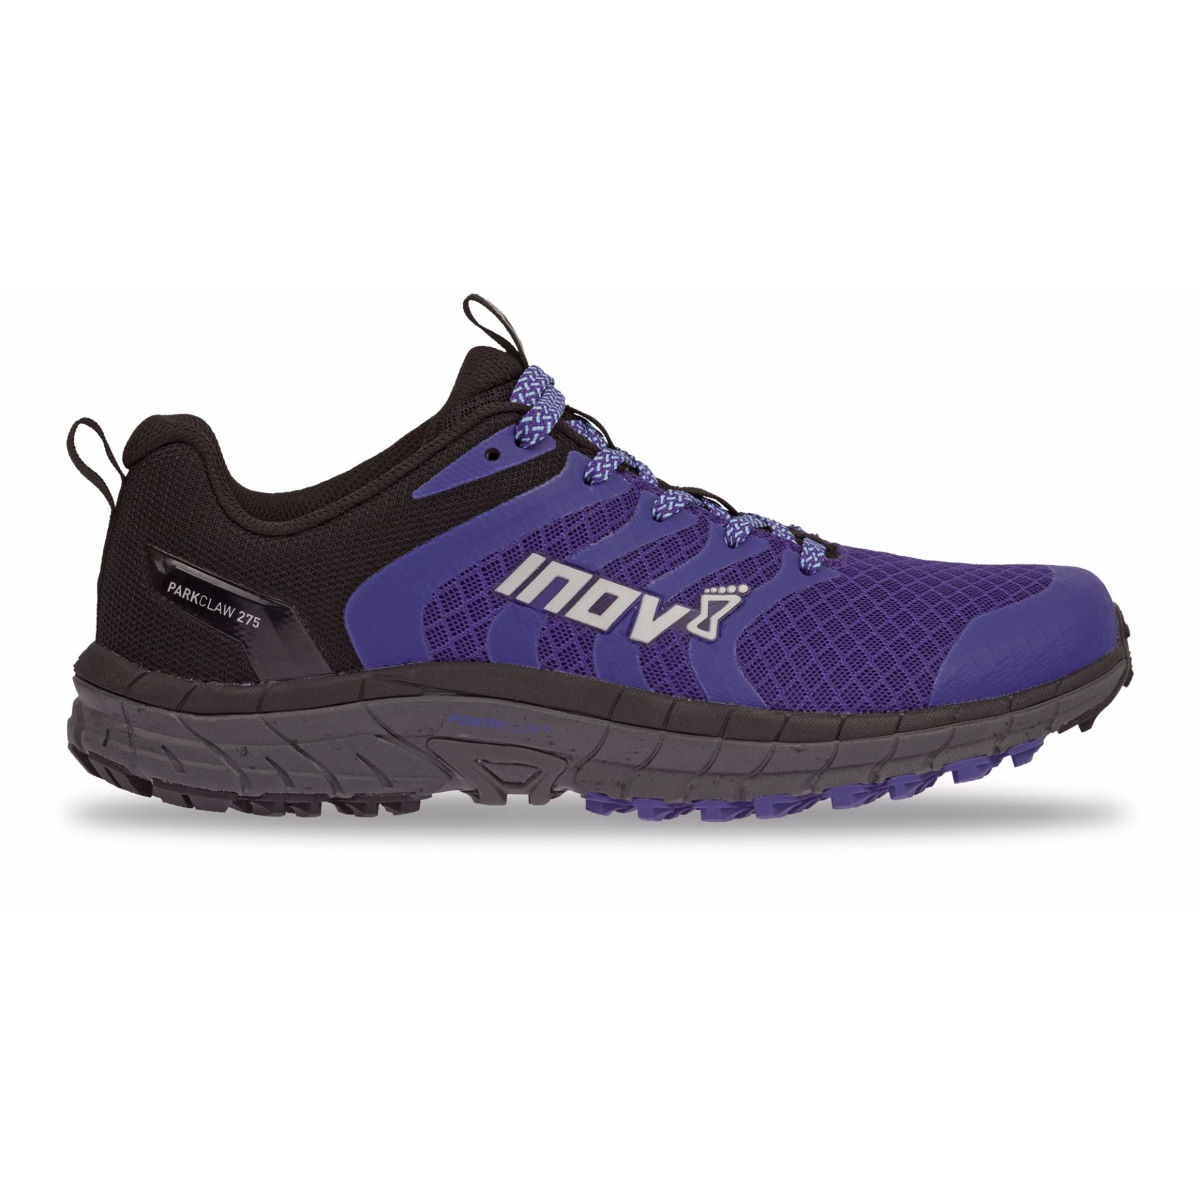 Chaussures Femme Inov-8 Parkclaw 275 - UK 4 PURPLE/BLACK